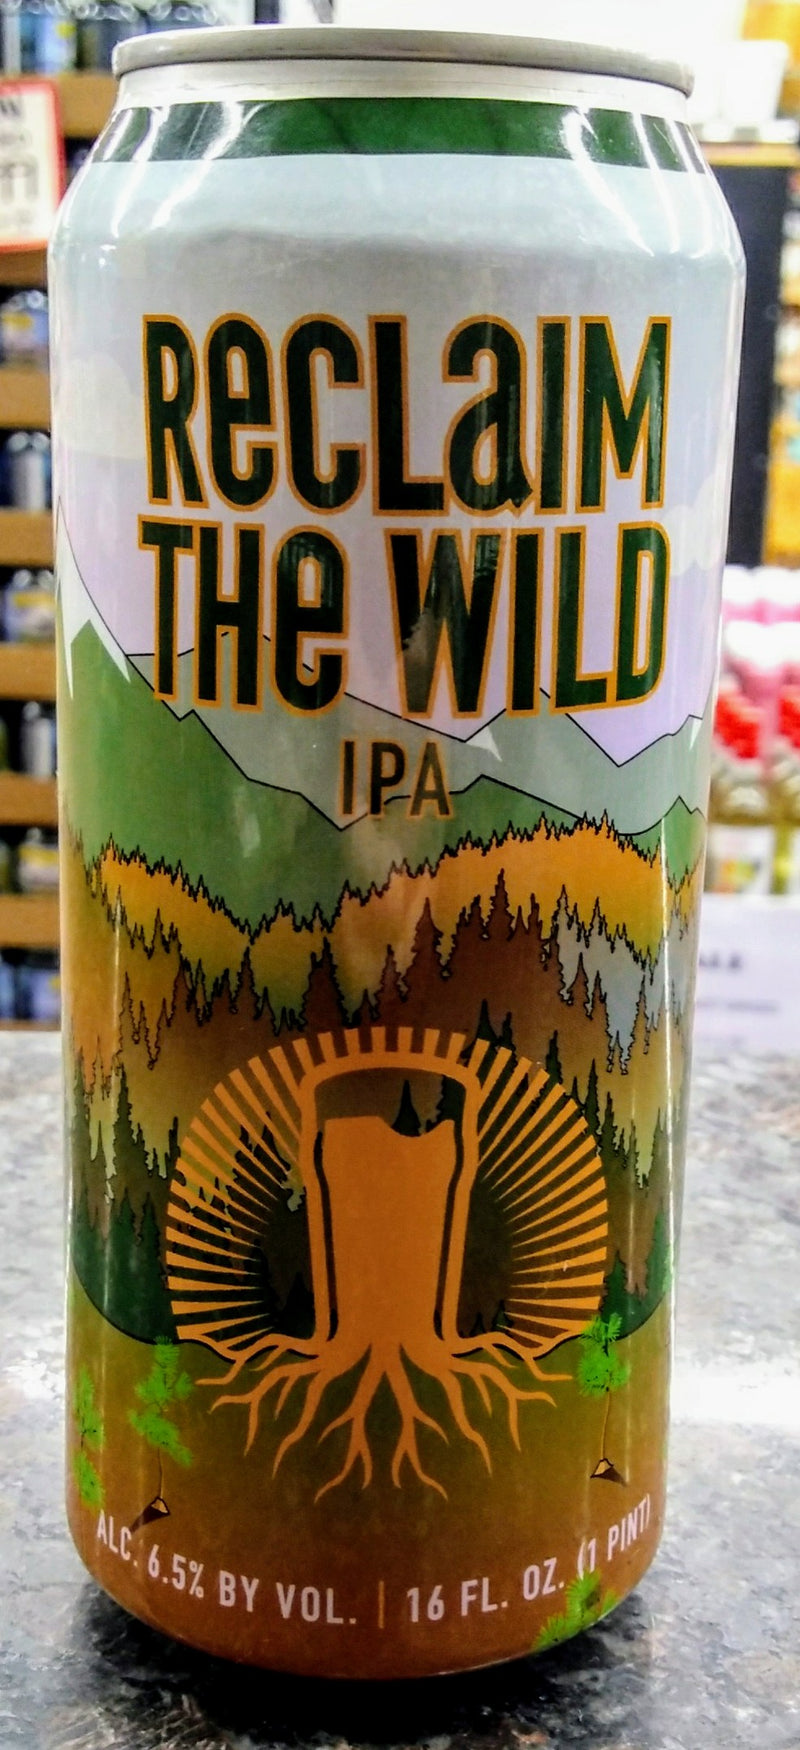 BURGEON BEER CO. RECLAIM THE WILD IPA 16oz can